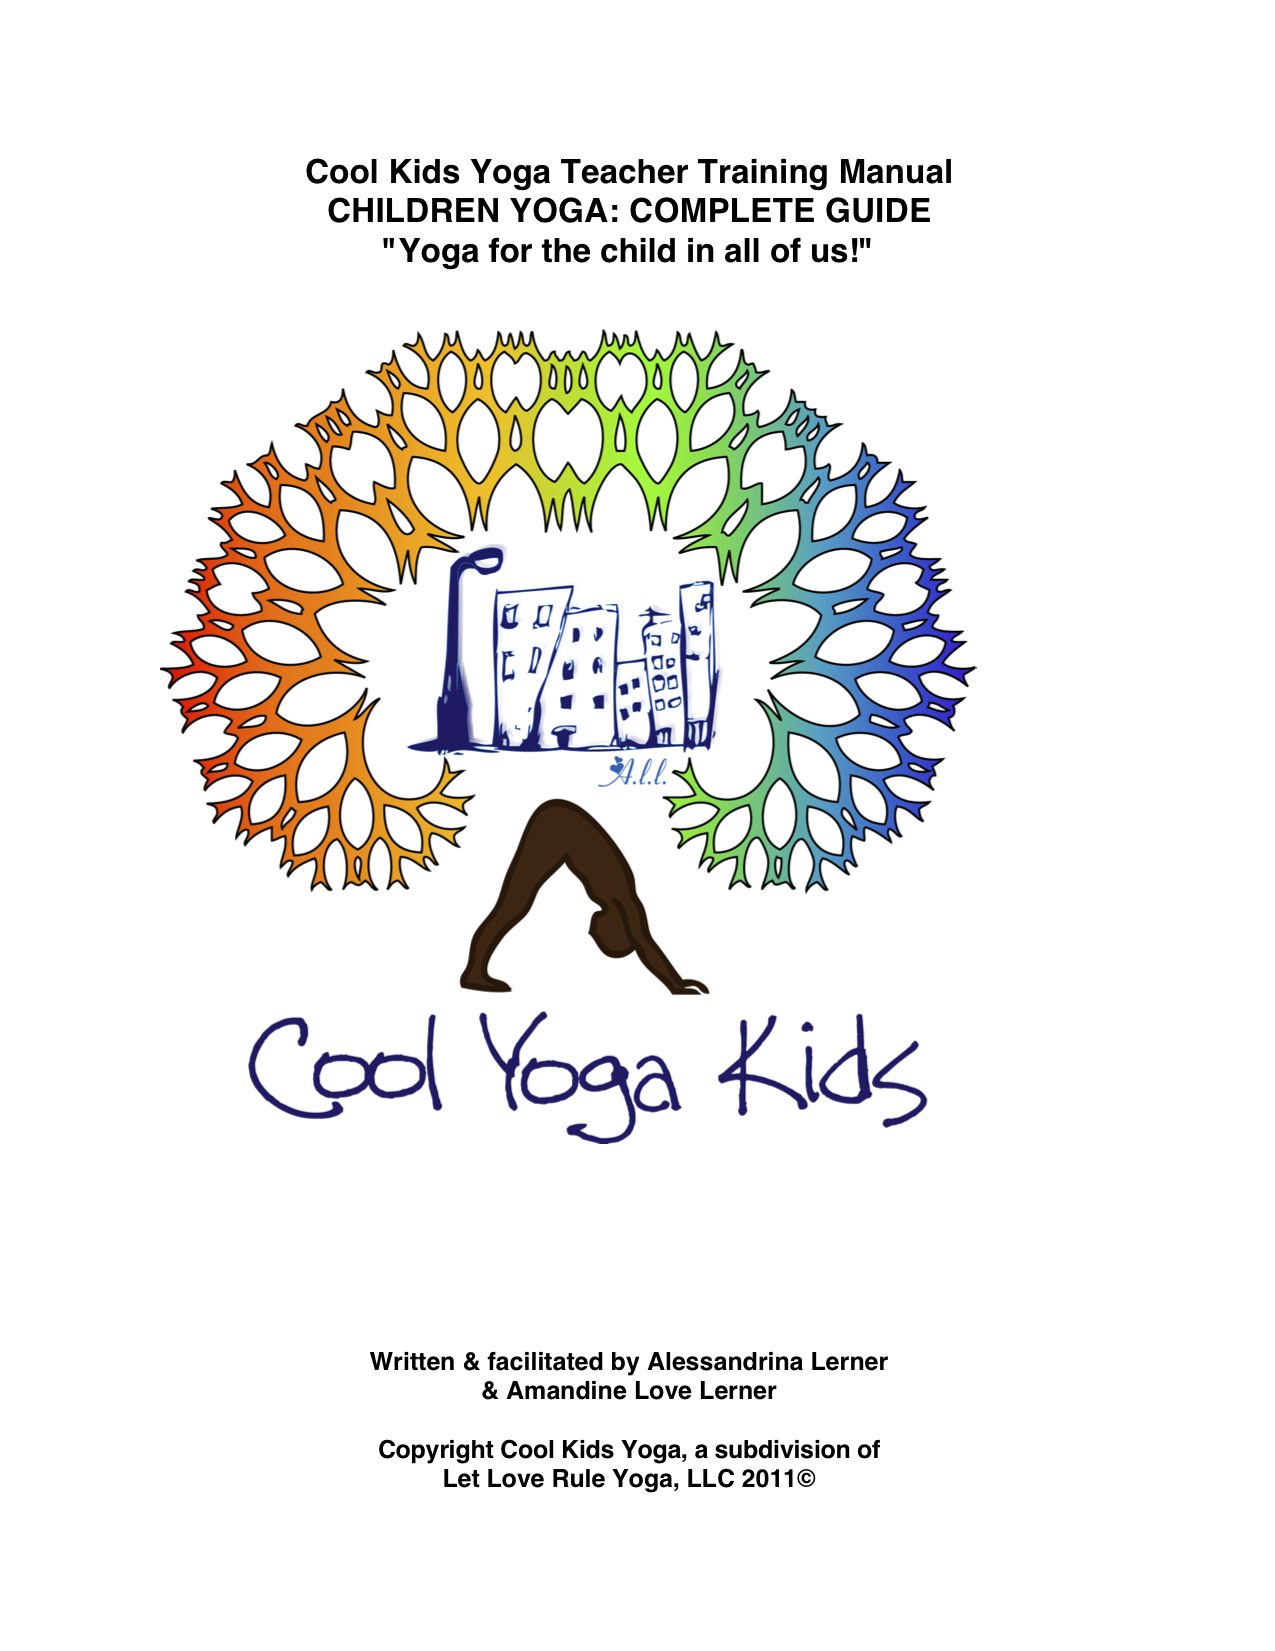 Children Yoga: Complete Guide - The Most Complete Methodology to Teaching Yoga to Children of All Ages